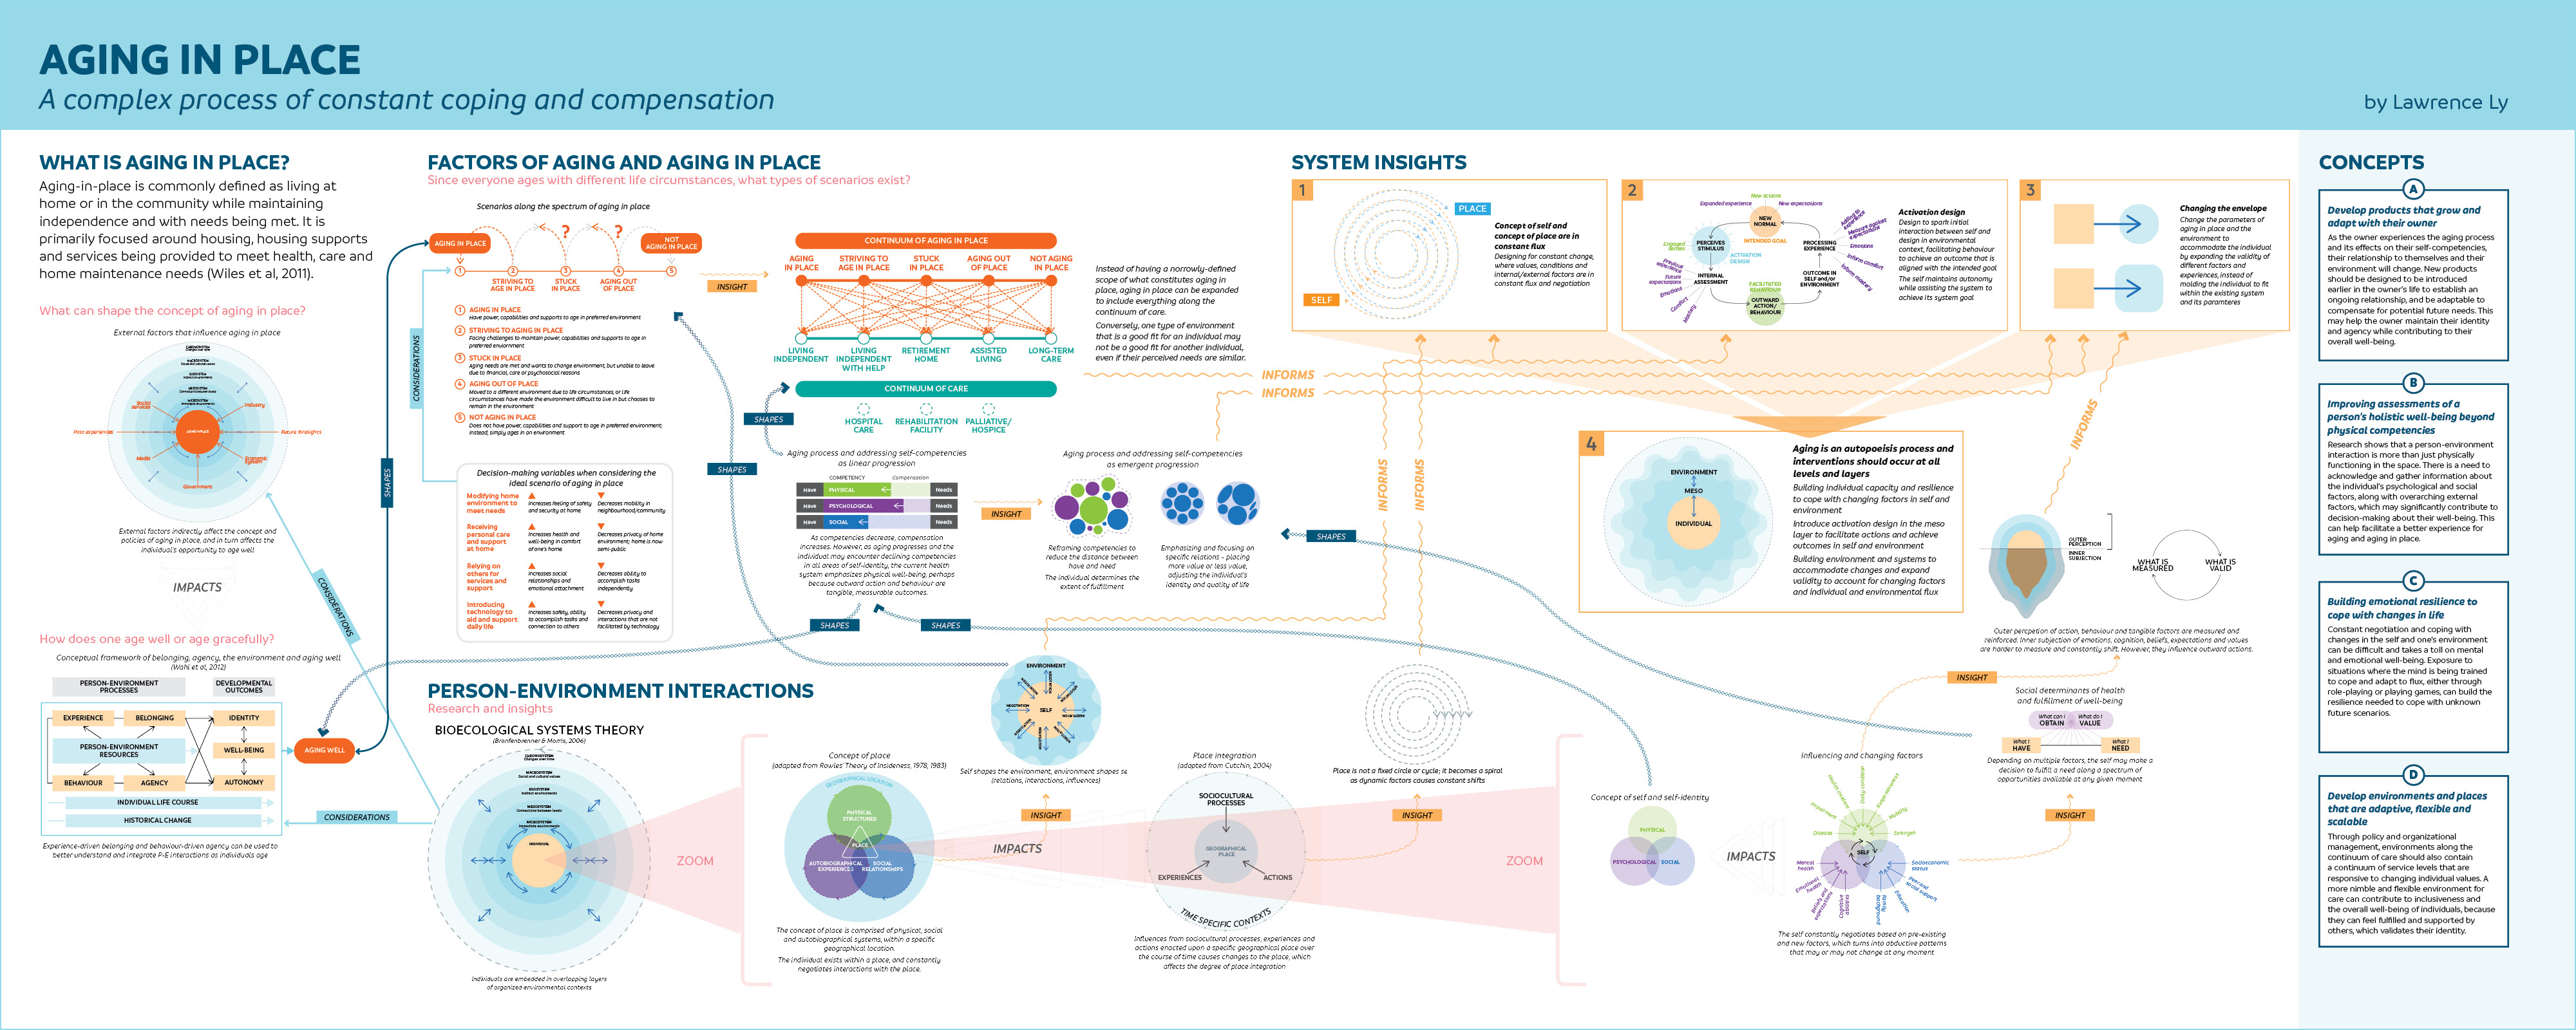 A full view of the gigamap poster with various diagrams, text and arrows to link concepts together.